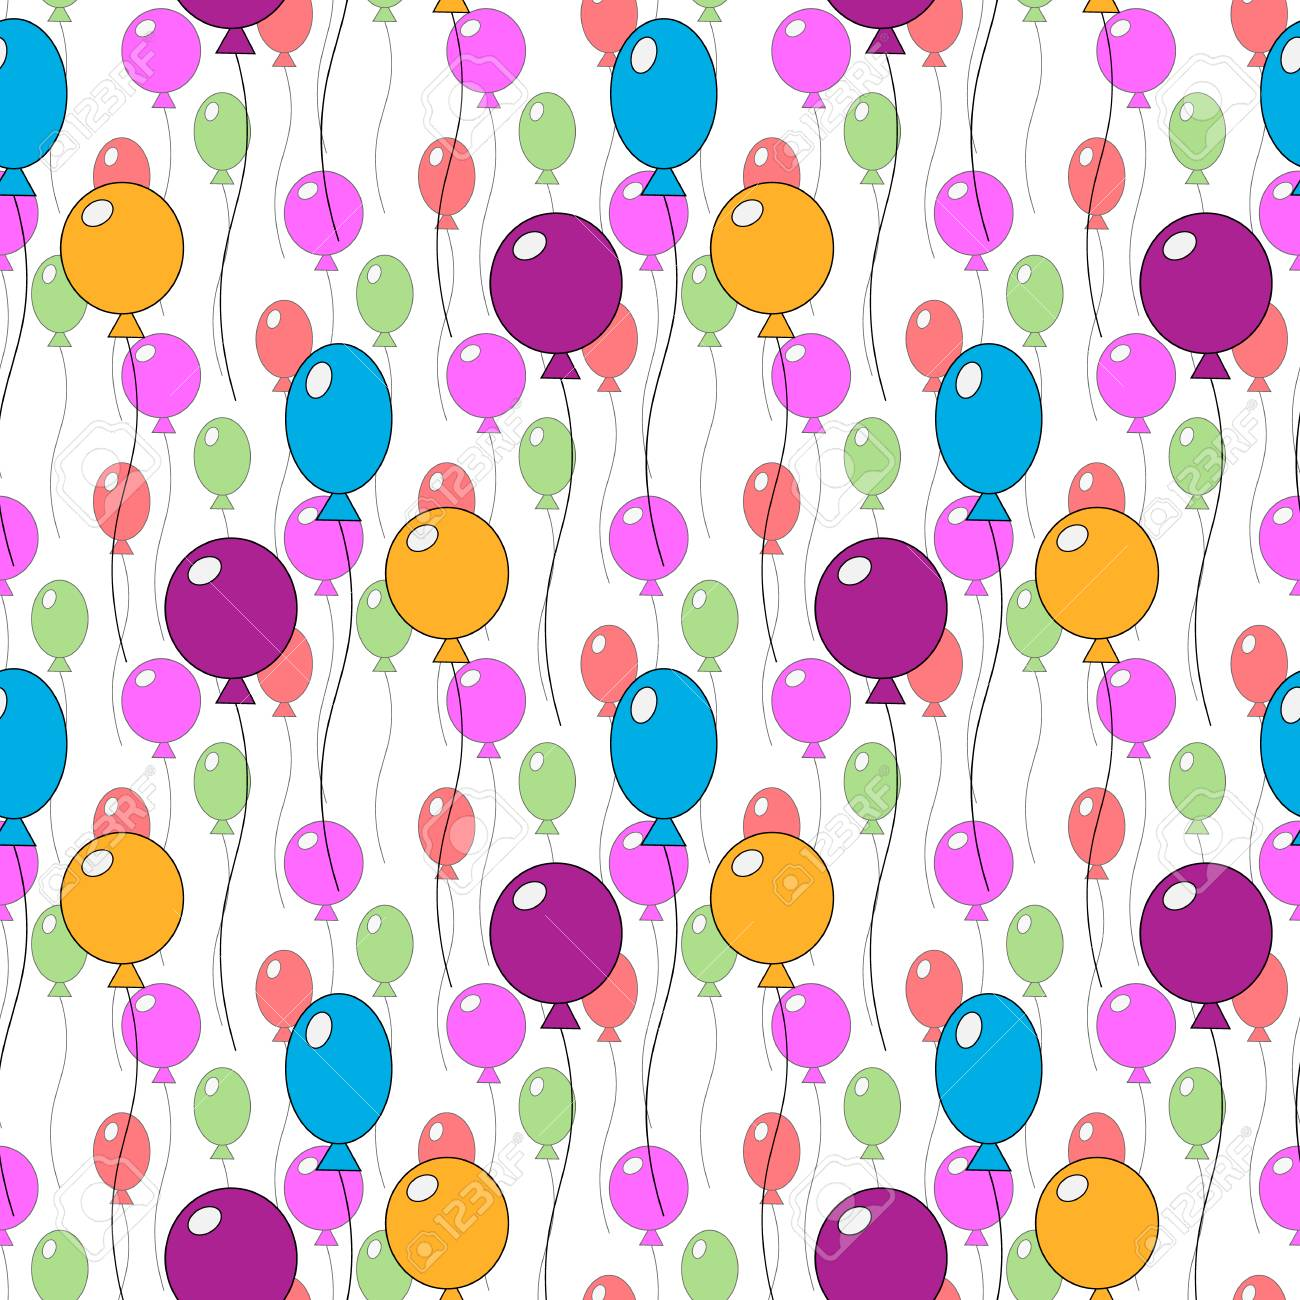 Seamless Pattern Of Different Colorful Cute Balloons Design For Happy Birthday Party Baby